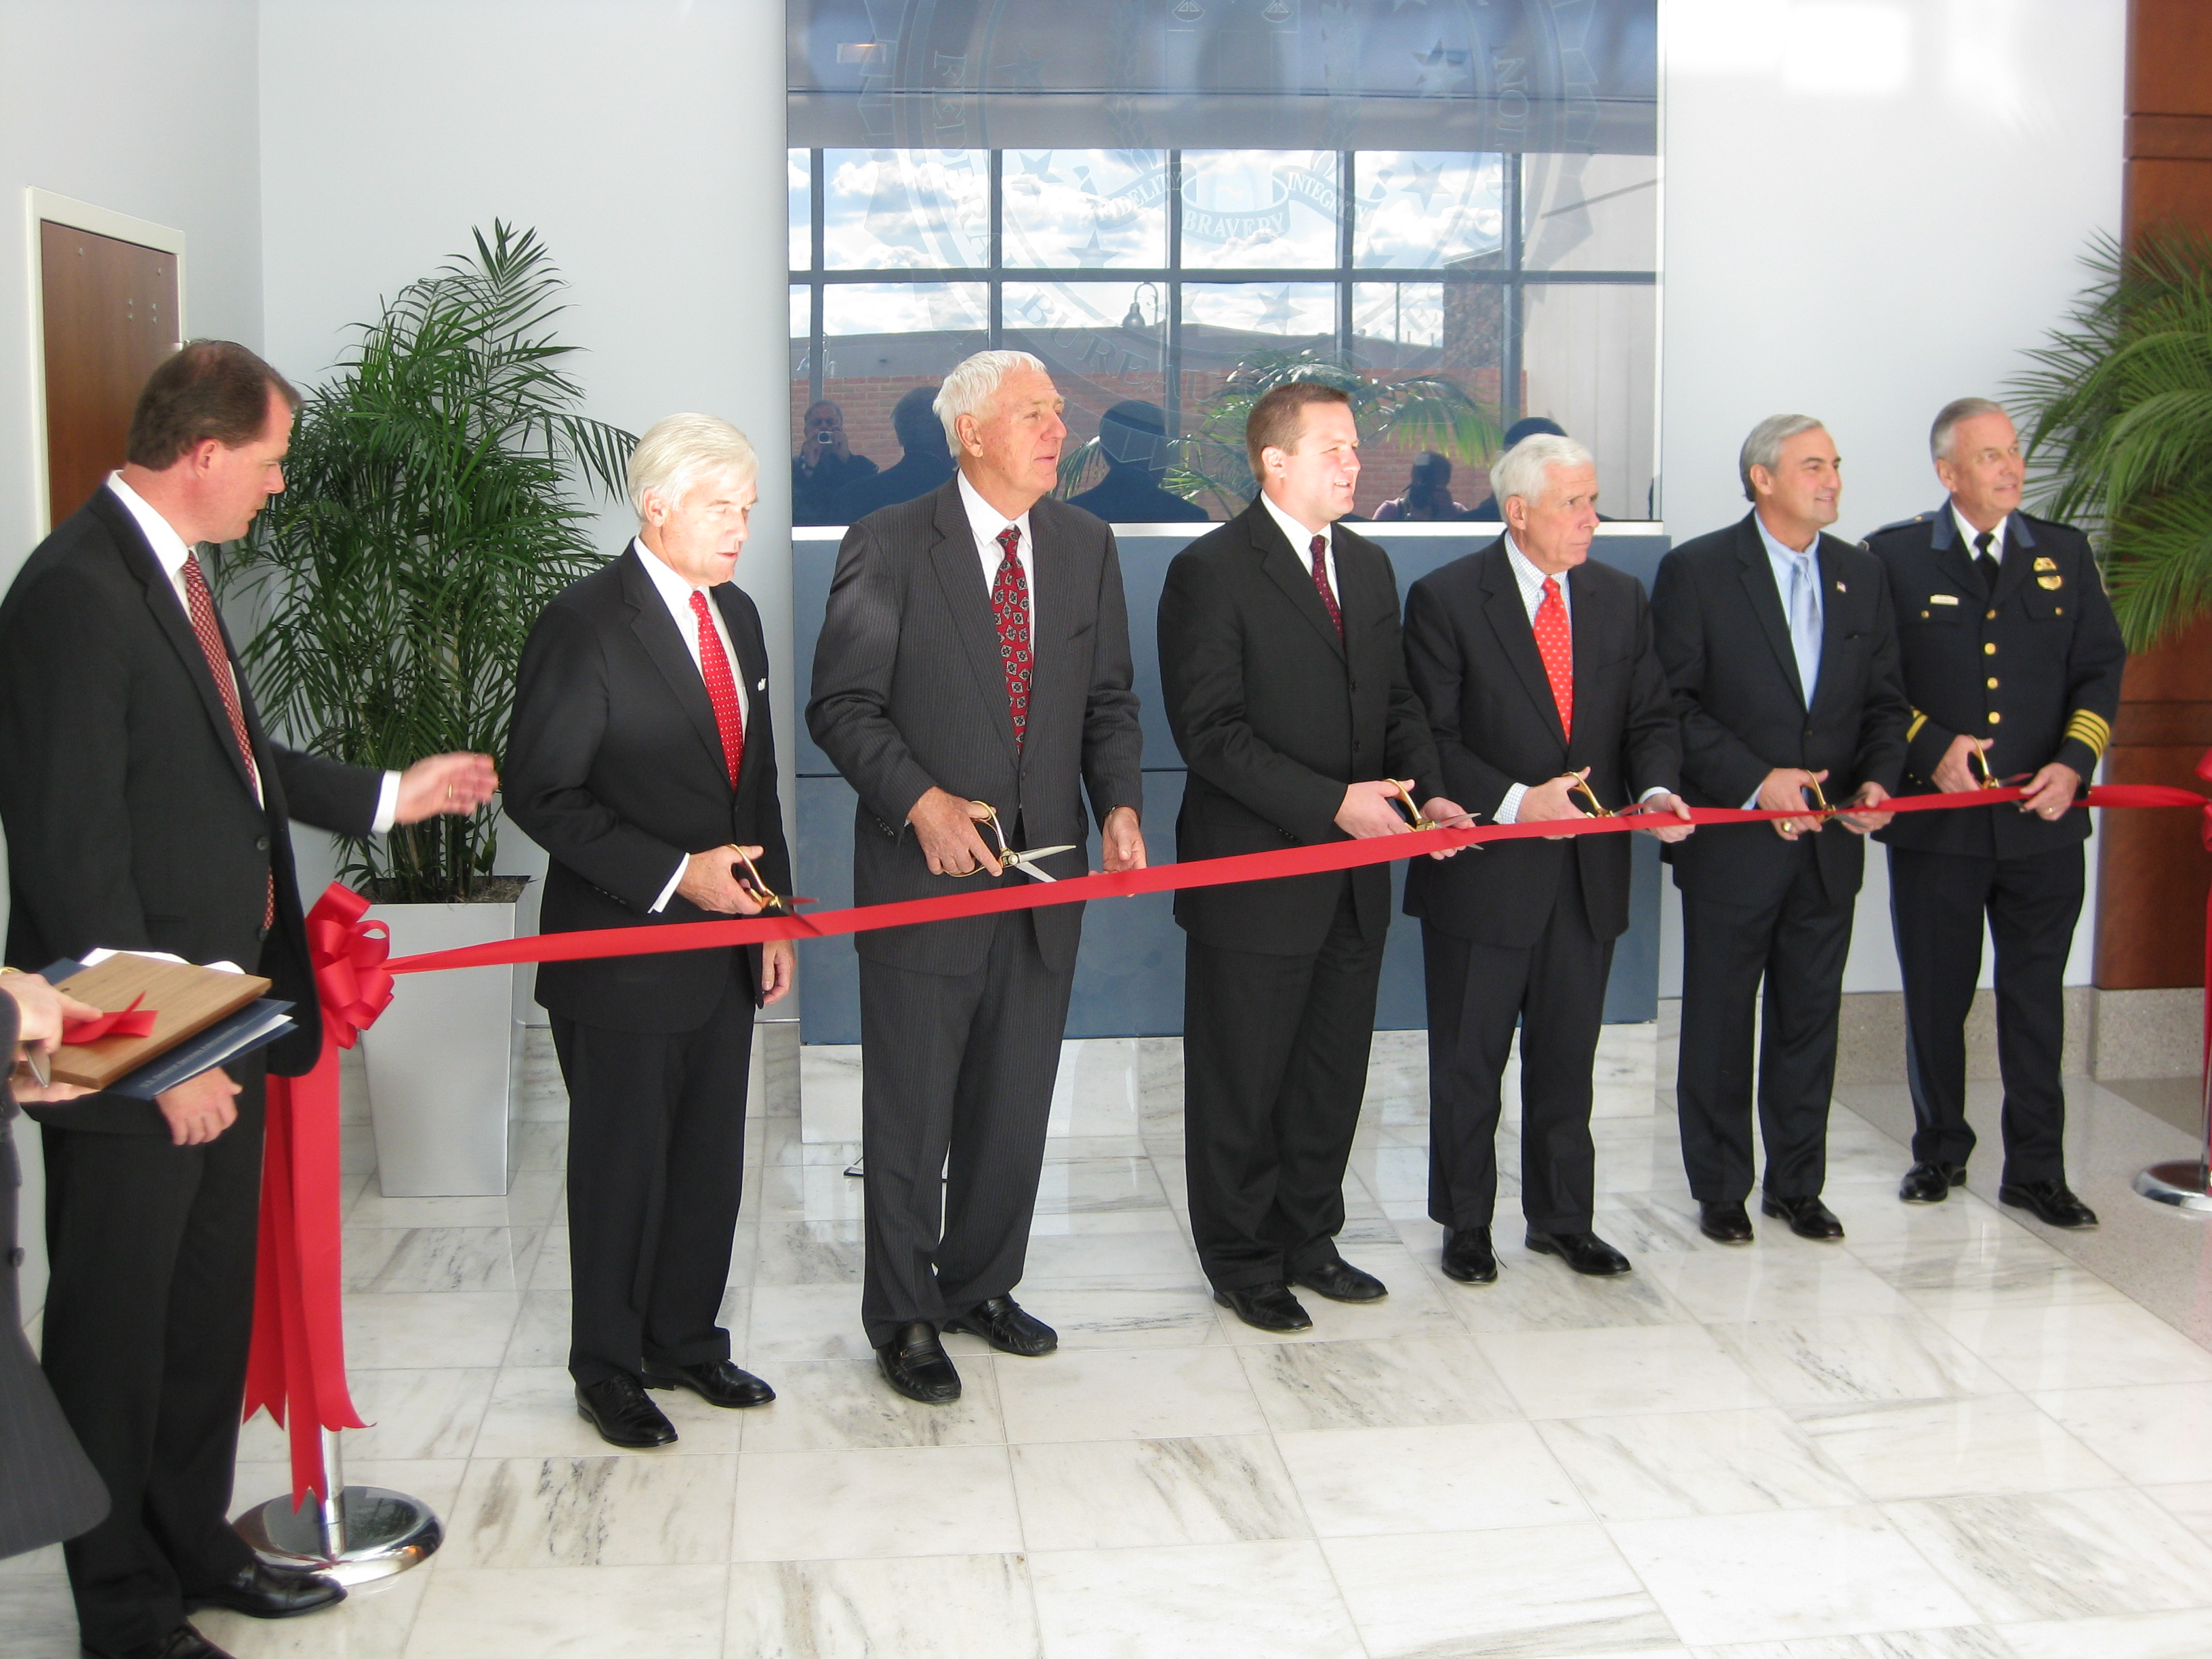 Several prominent officials cut the ribbon include Rep. Frank Wolf and Joseph Persichini Jr., head of the Washington field office